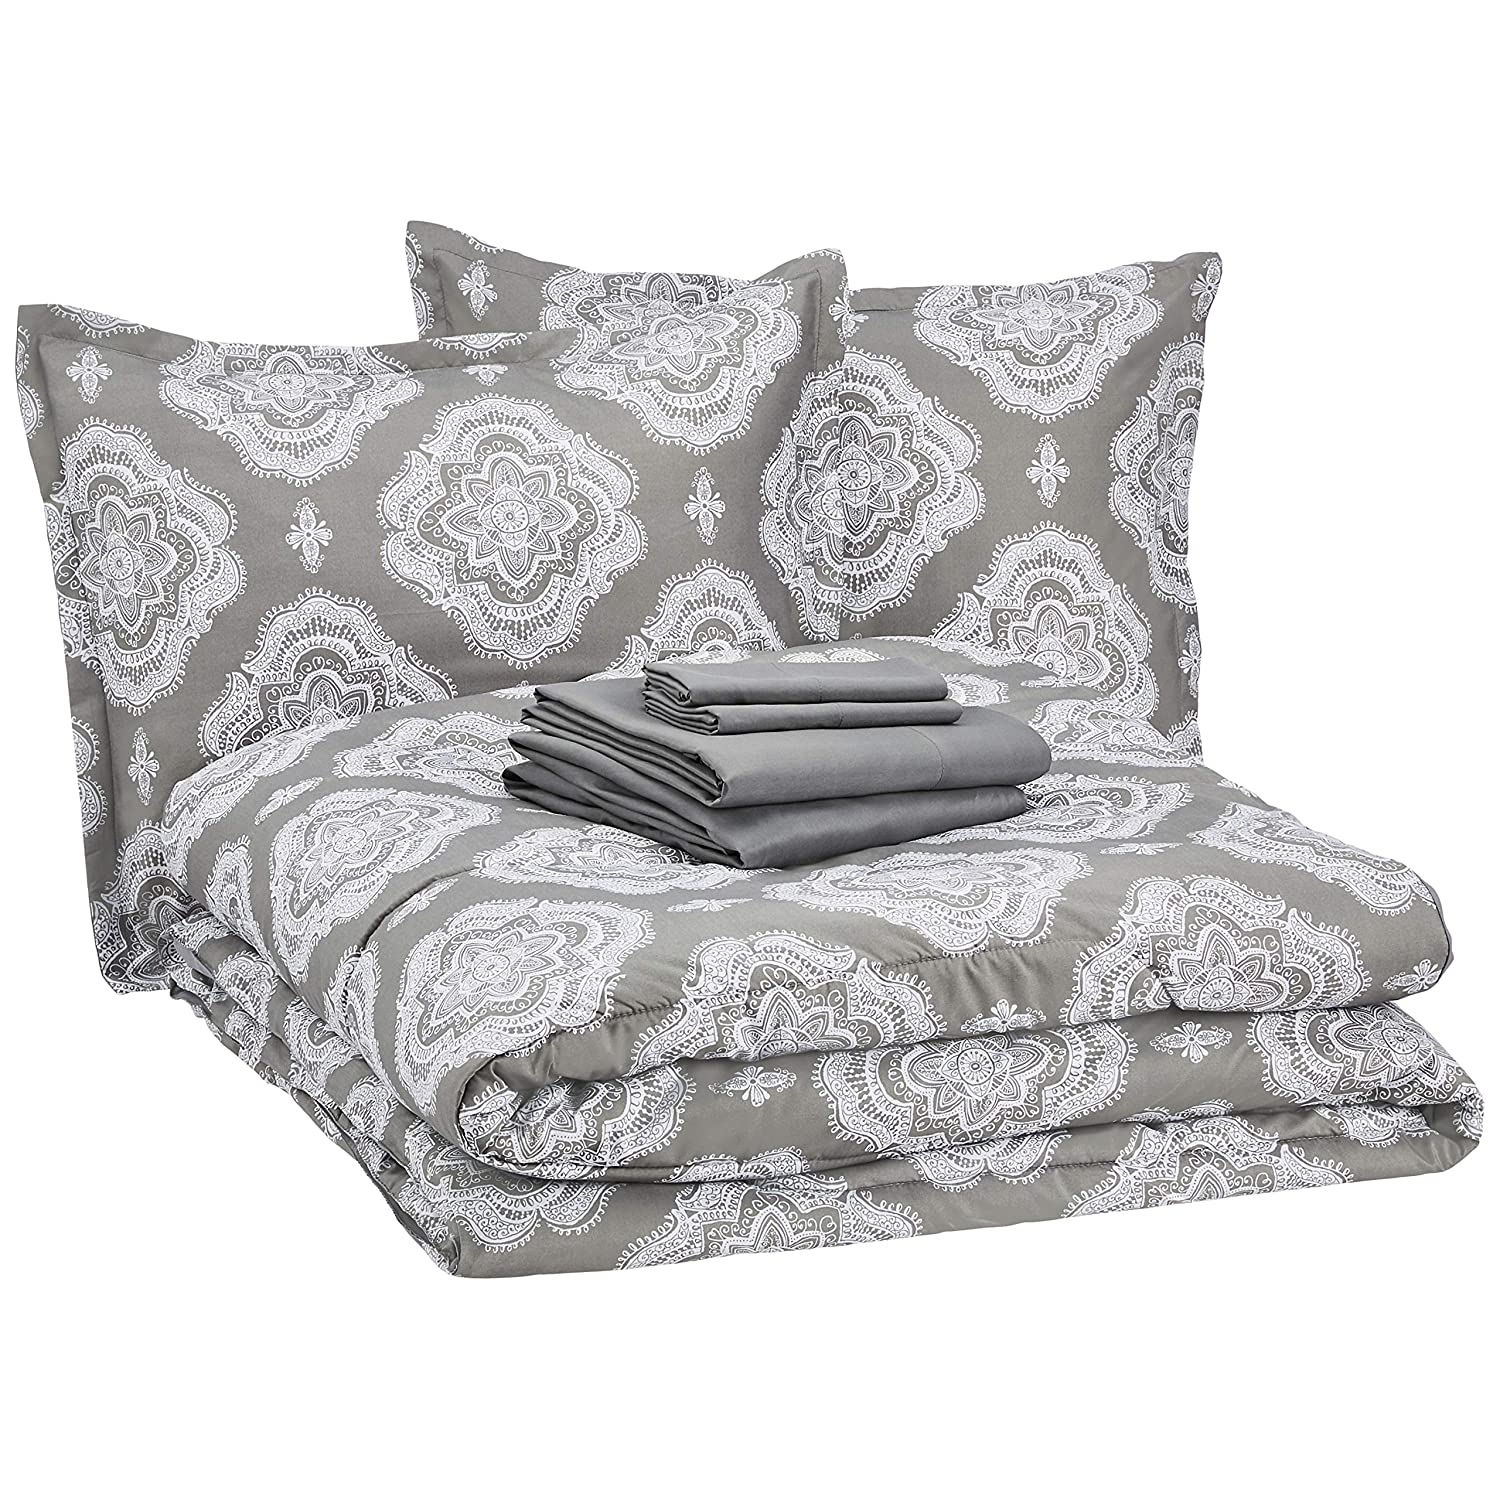 AmazonBasics Bed-in-a-Bag - Soft, Easy-Wash Microfiber - 8-Piece Full/Queen, Grey Medallion